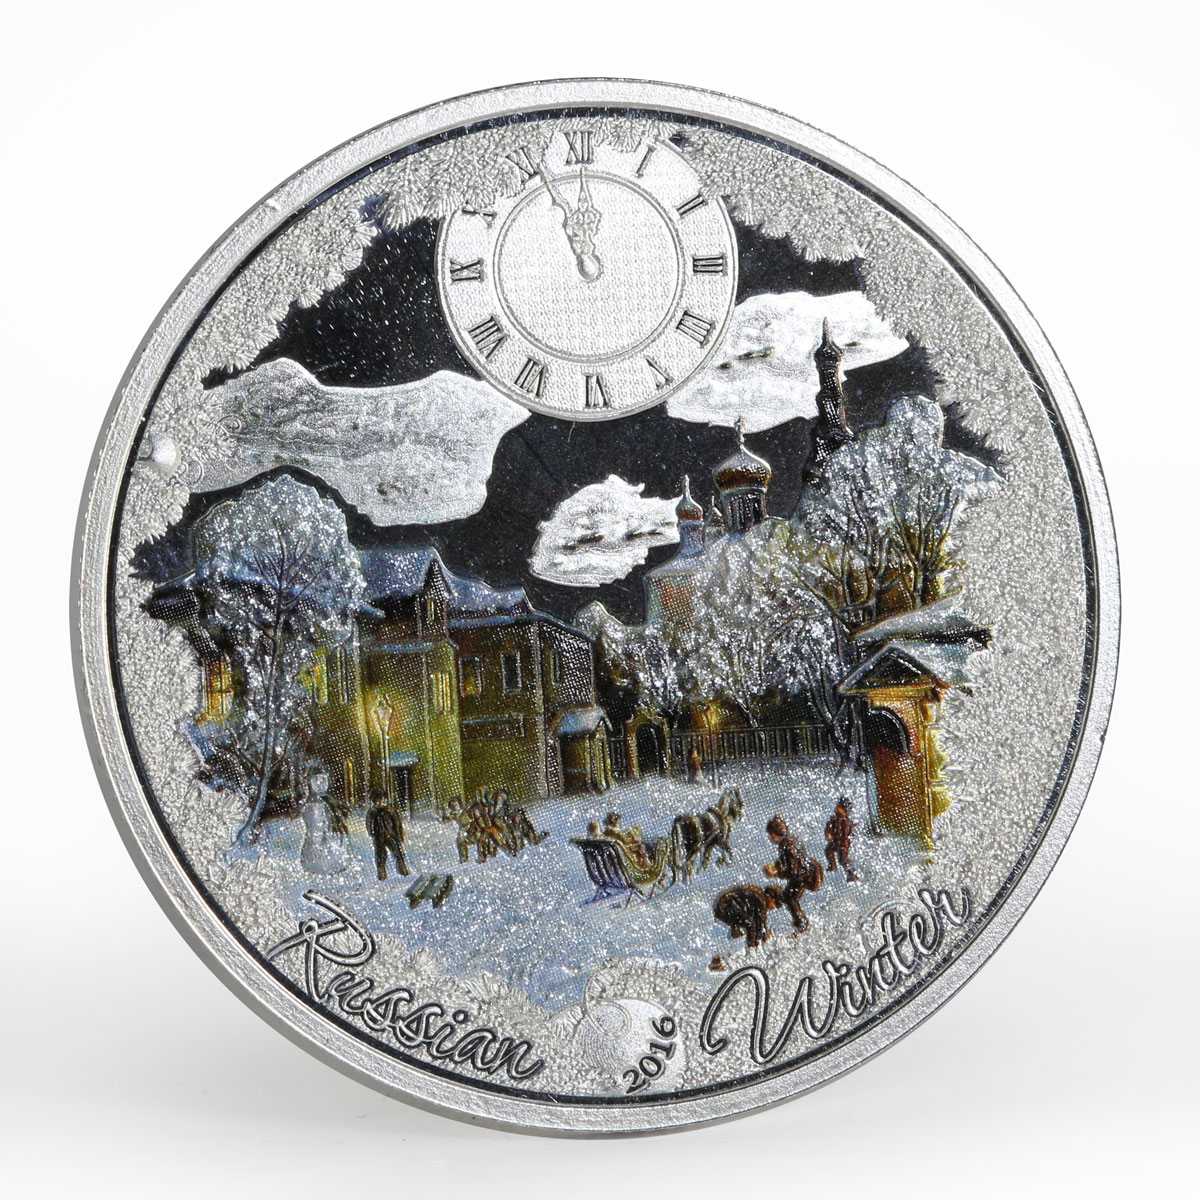 Congo 1000 francs Russian Winter Clock colored silver proof coin 2016